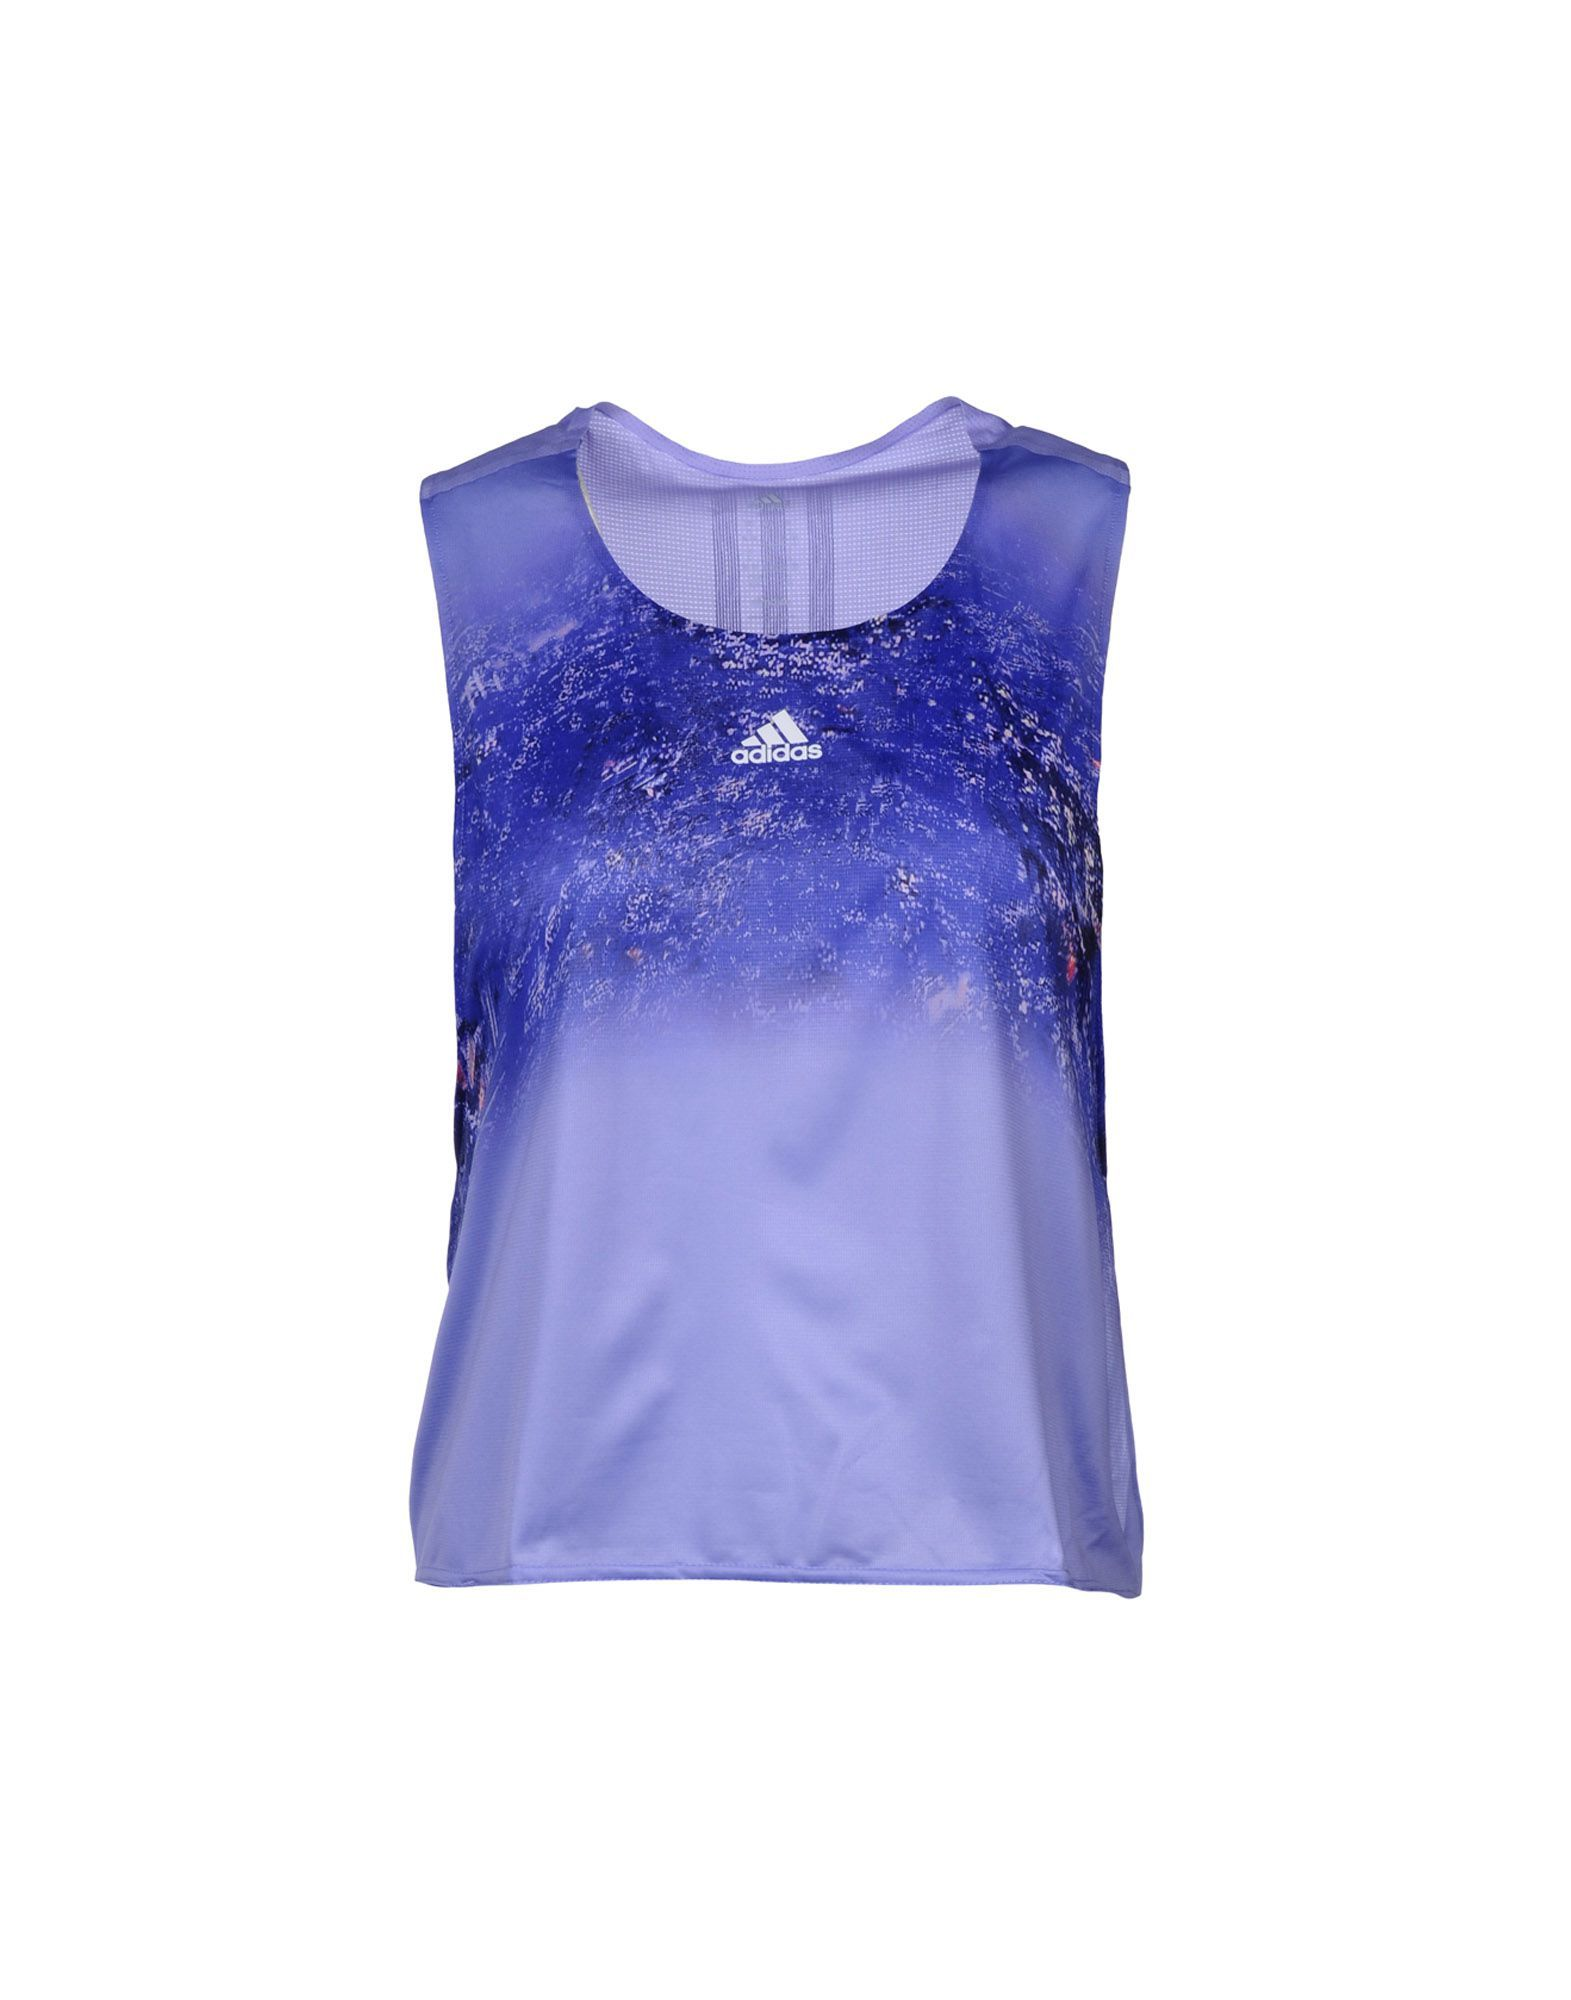 Adidas Lilac Polyester Top